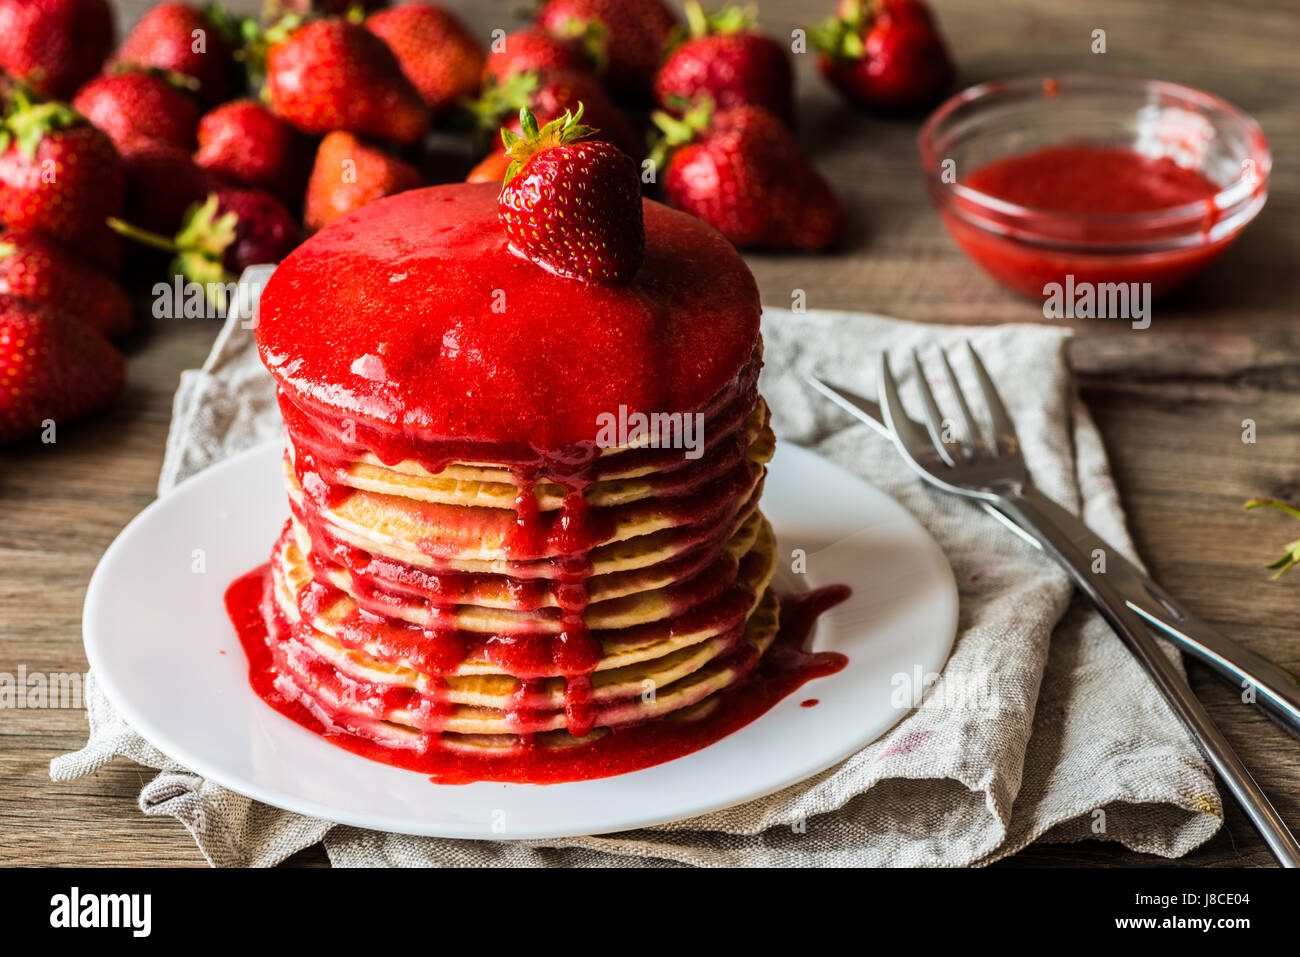 Macro american pancakes with strawberry jam on a wooden background. Shallow depth of field. - Stock Image